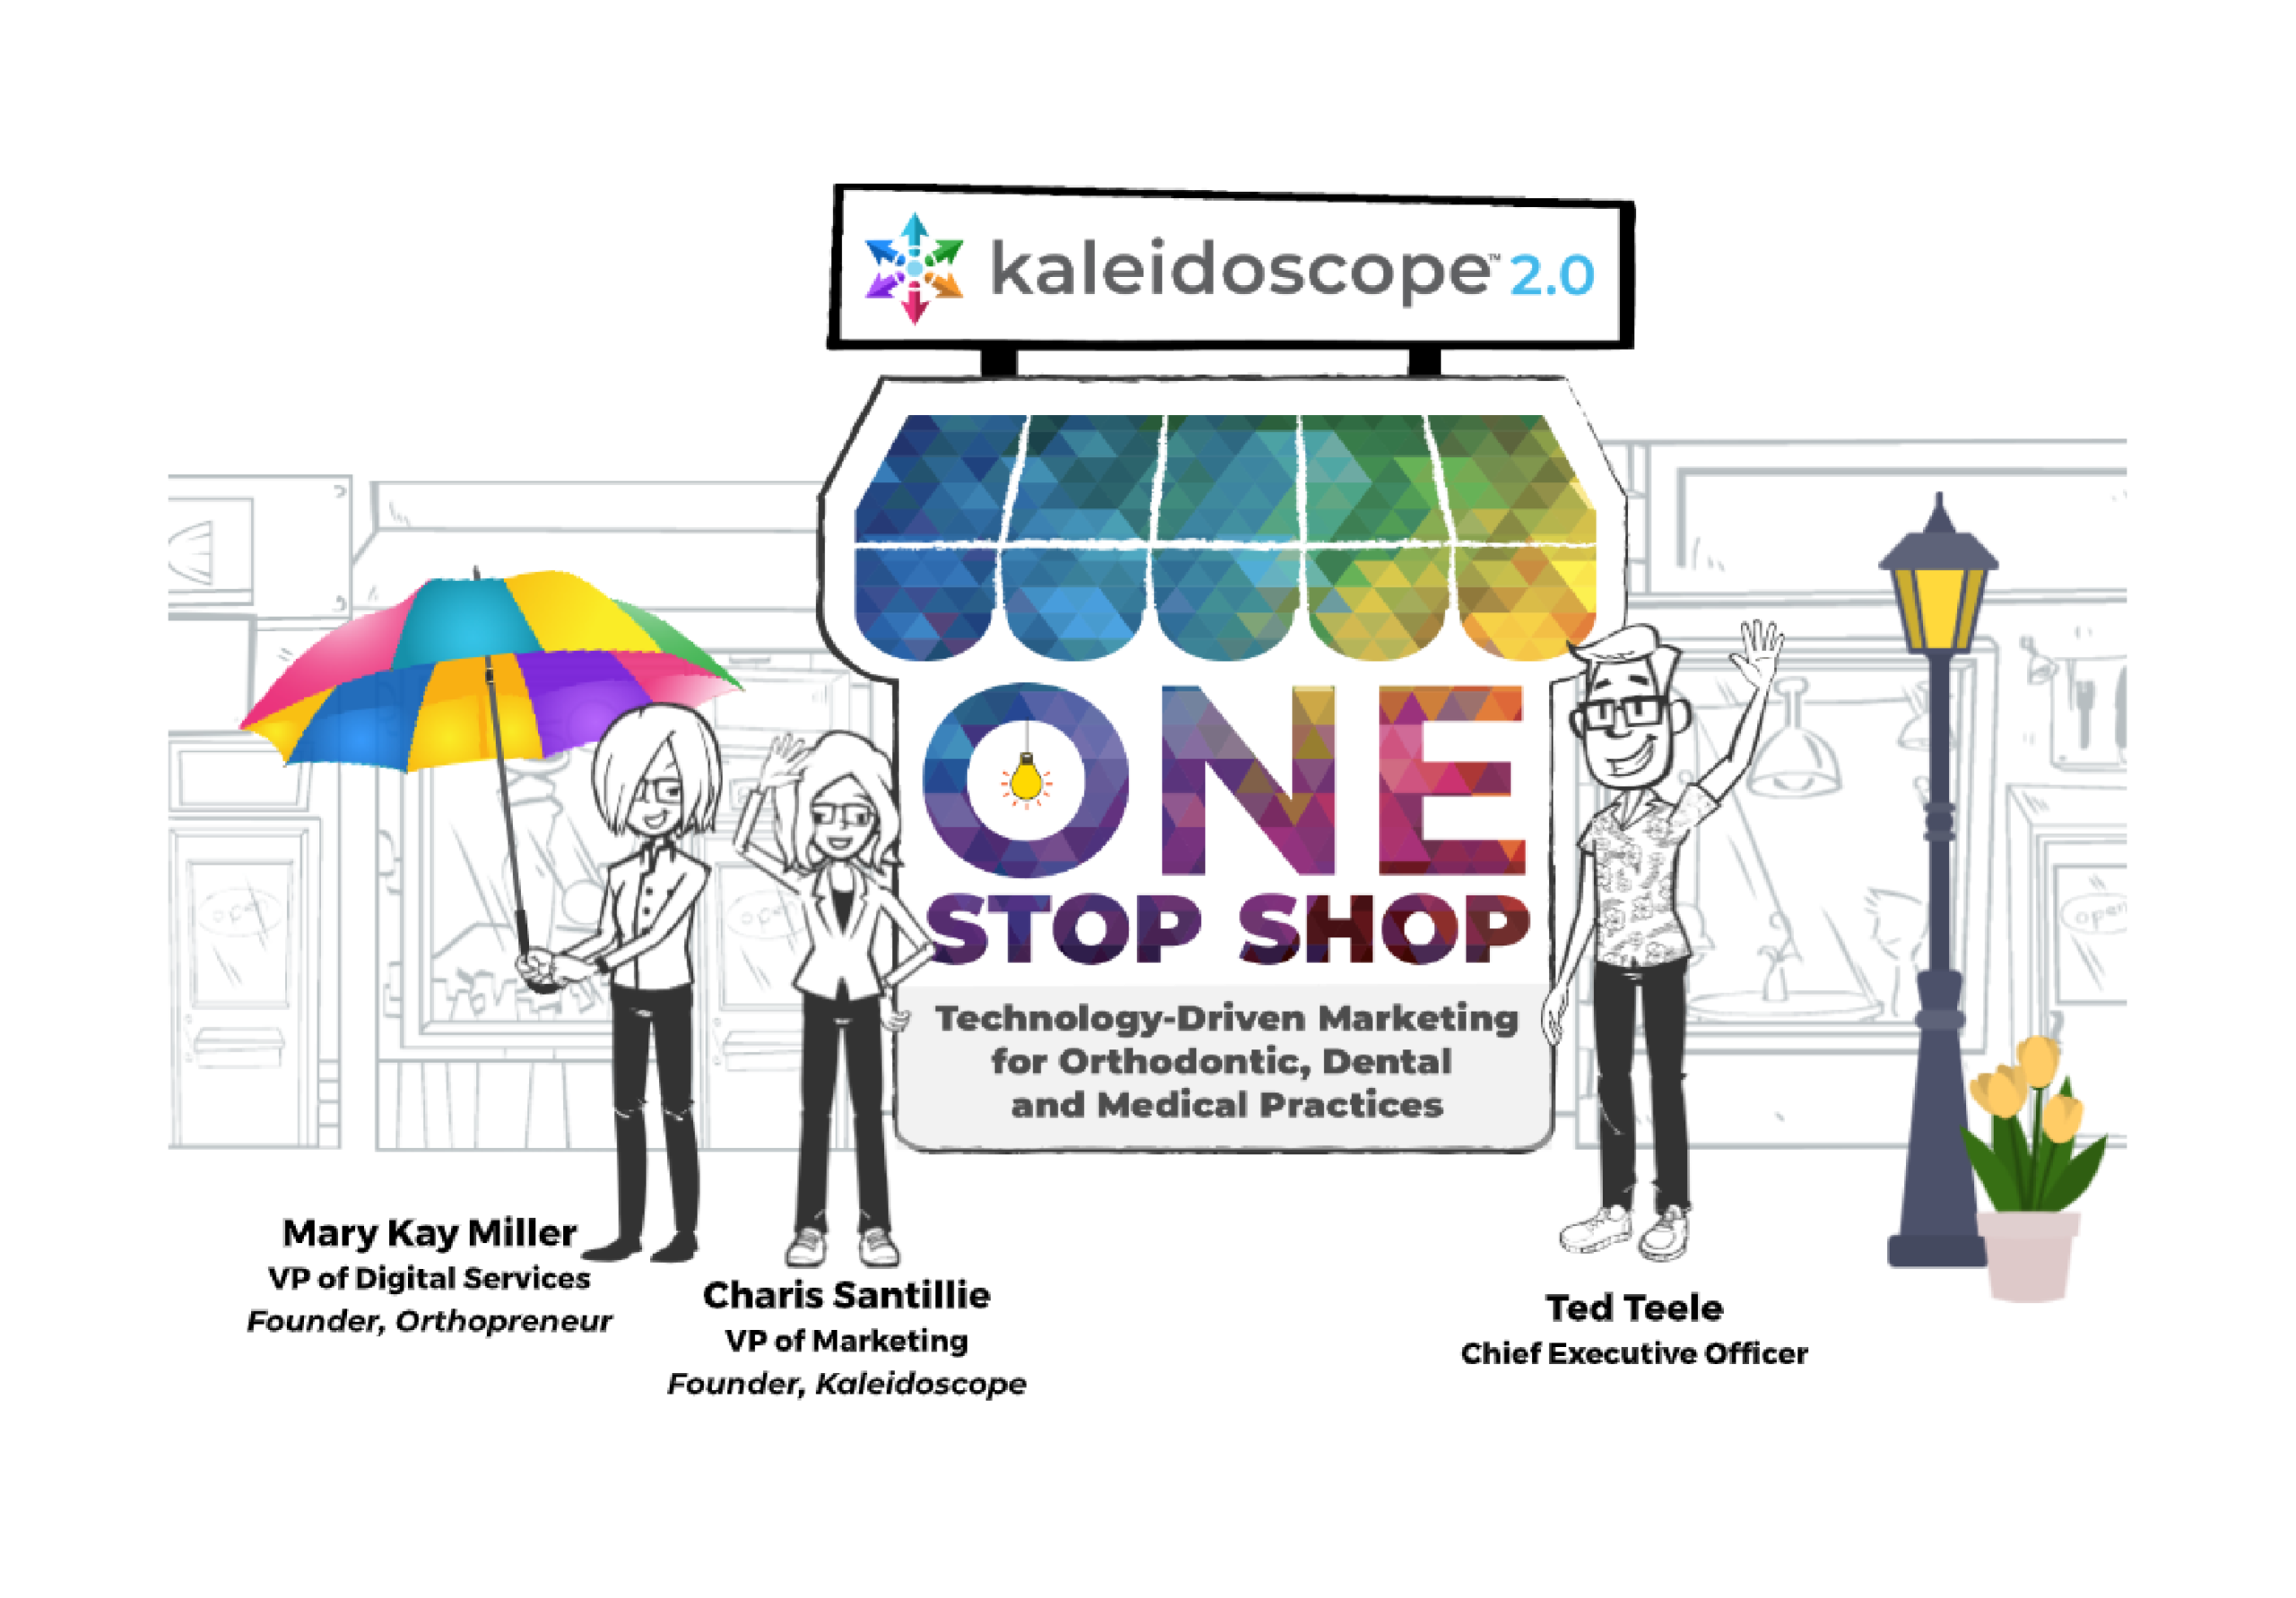 Kaleidoscope 2.0 One Stop Shop for Orthodontic, Dental, and Medical Practices